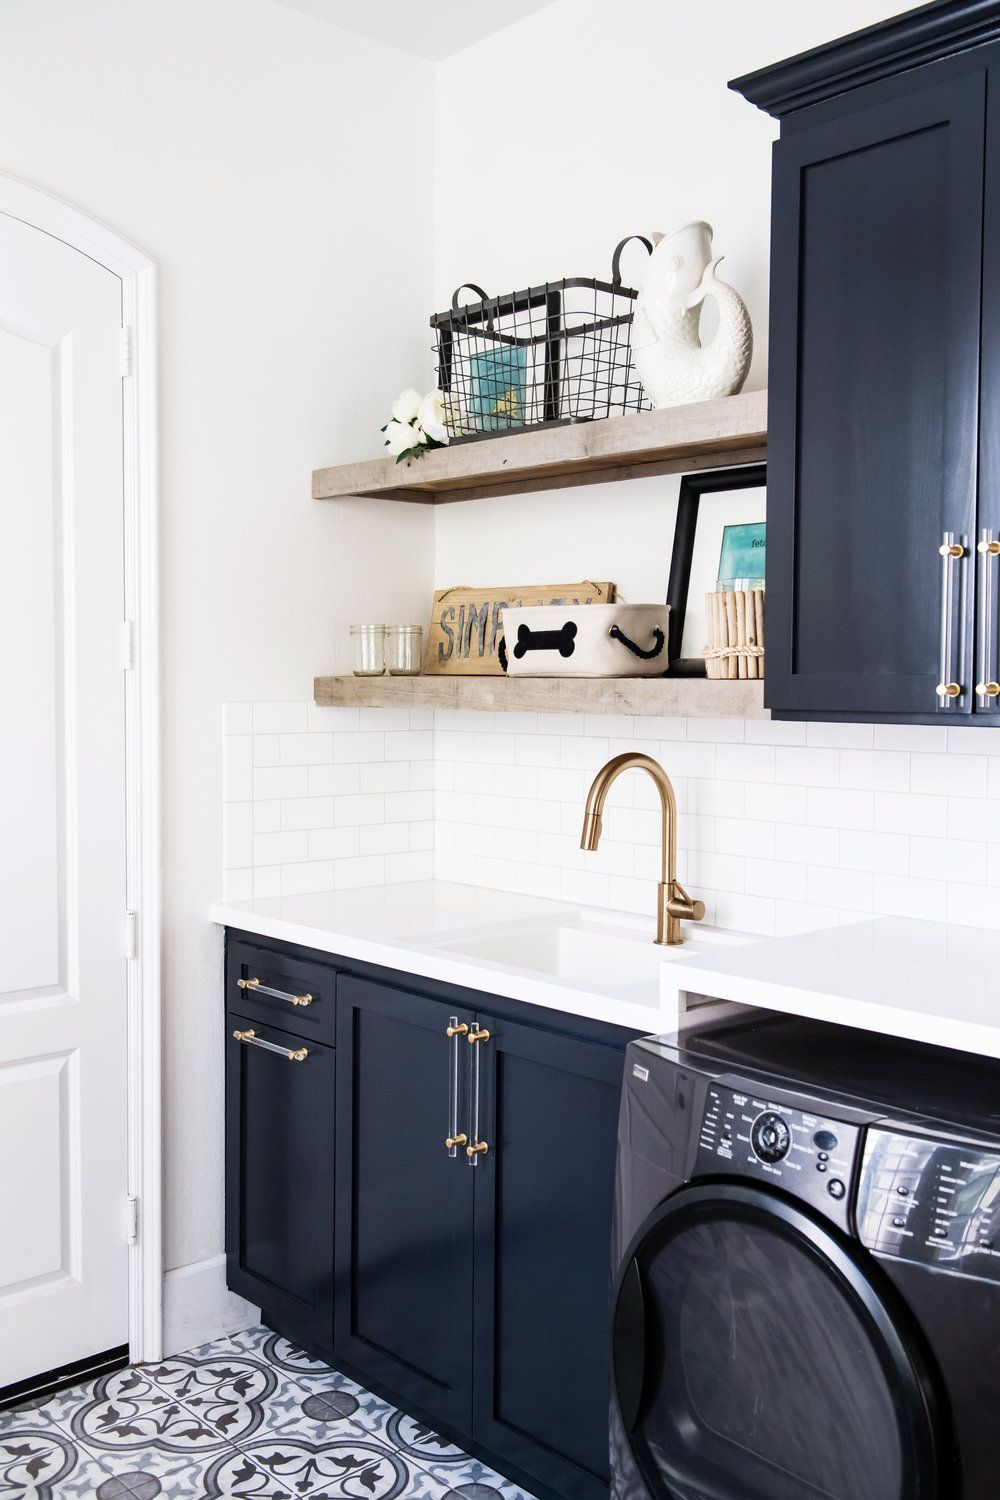 Navy Blue Cabinets And Pattern Tile Flooring In Modern Laundry